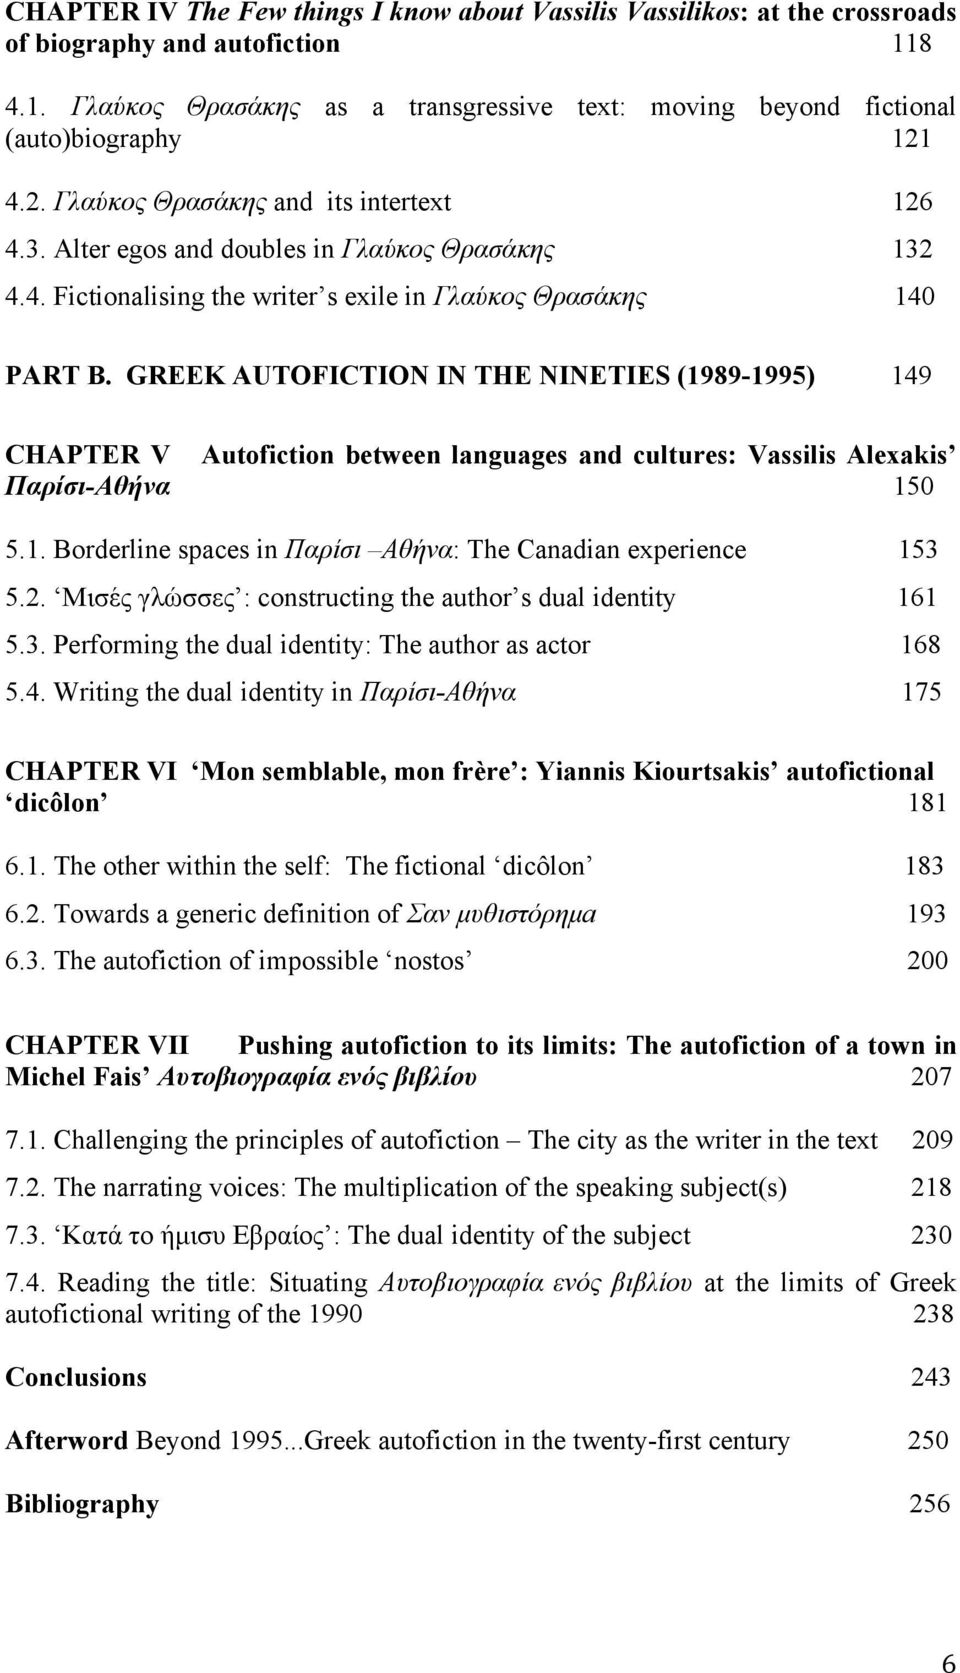 GREEK AUTOFICTION IN THE NINETIES (1989-1995) 149 CHAPTER V Autofiction between languages and cultures: Vassilis Alexakis Παρίσι-Αθήνα 150 5.1. Borderline spaces in Παρίσι Αθήνα: The Canadian experience 153 5.